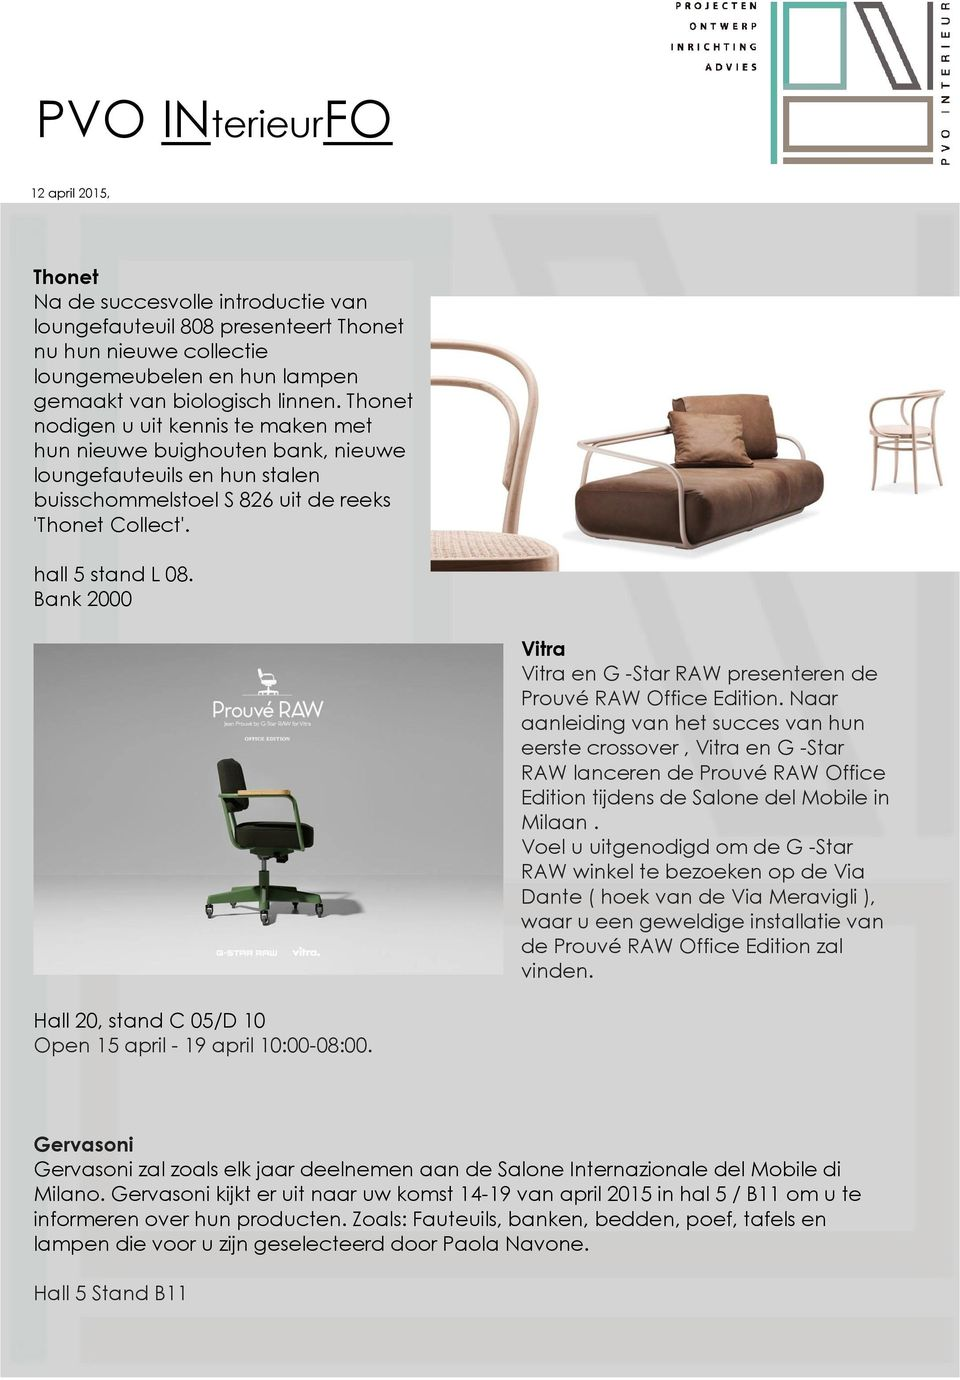 Bank 2000 Vitra Vitra en G -Star RAW presenteren de Prouvé RAW Office Edition.